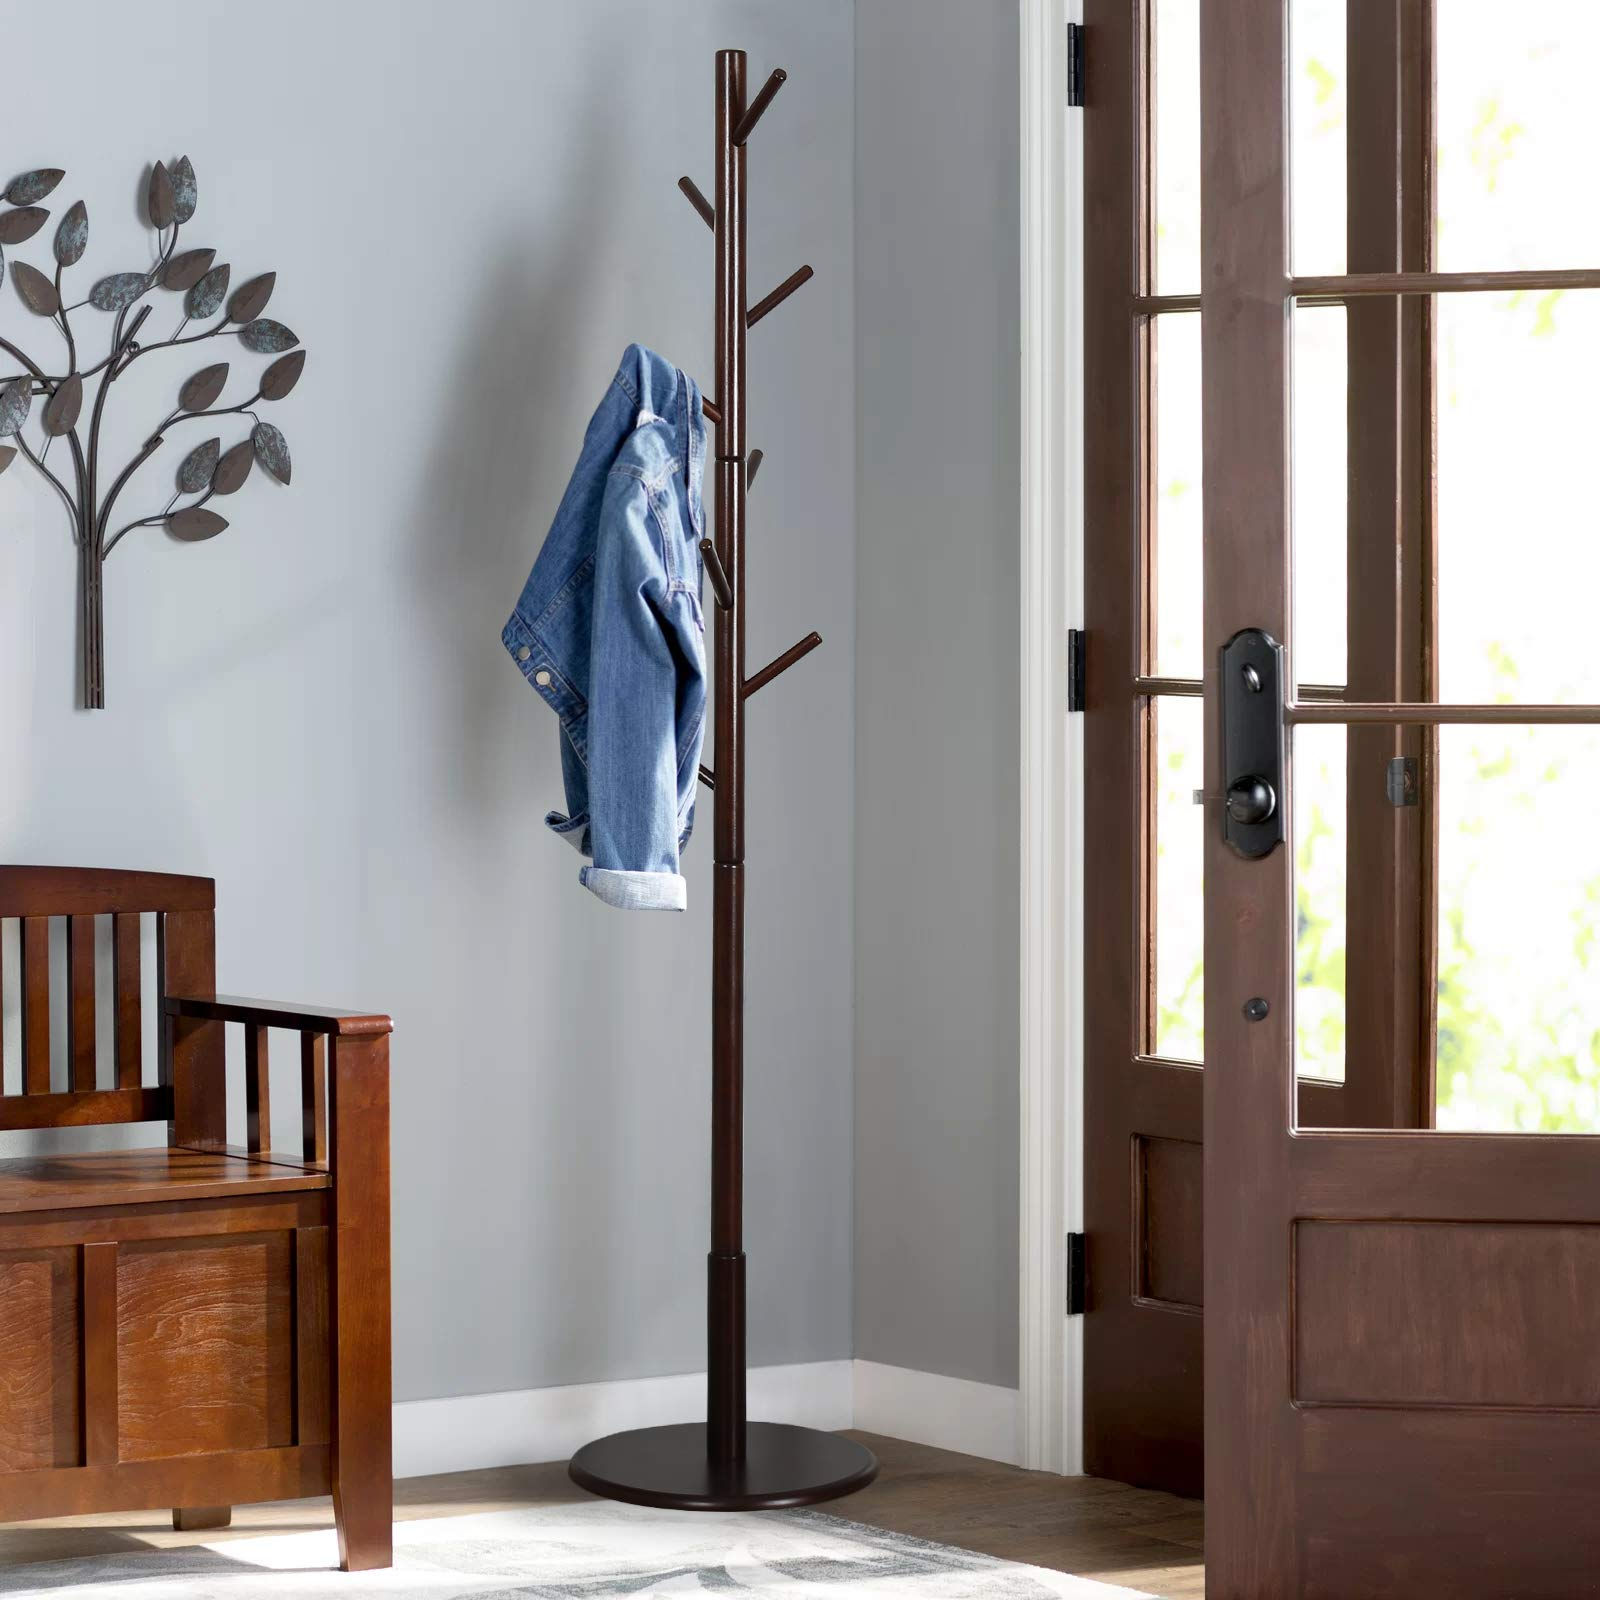 Vlush Sturdy Wooden Coat Rack Stand, Entryway Hall Tree Coat Tree with Solid Round Base for Hat,Clothes,Purse,Scarves,Handbags,Umbrella-(8 Hooks,Brown)